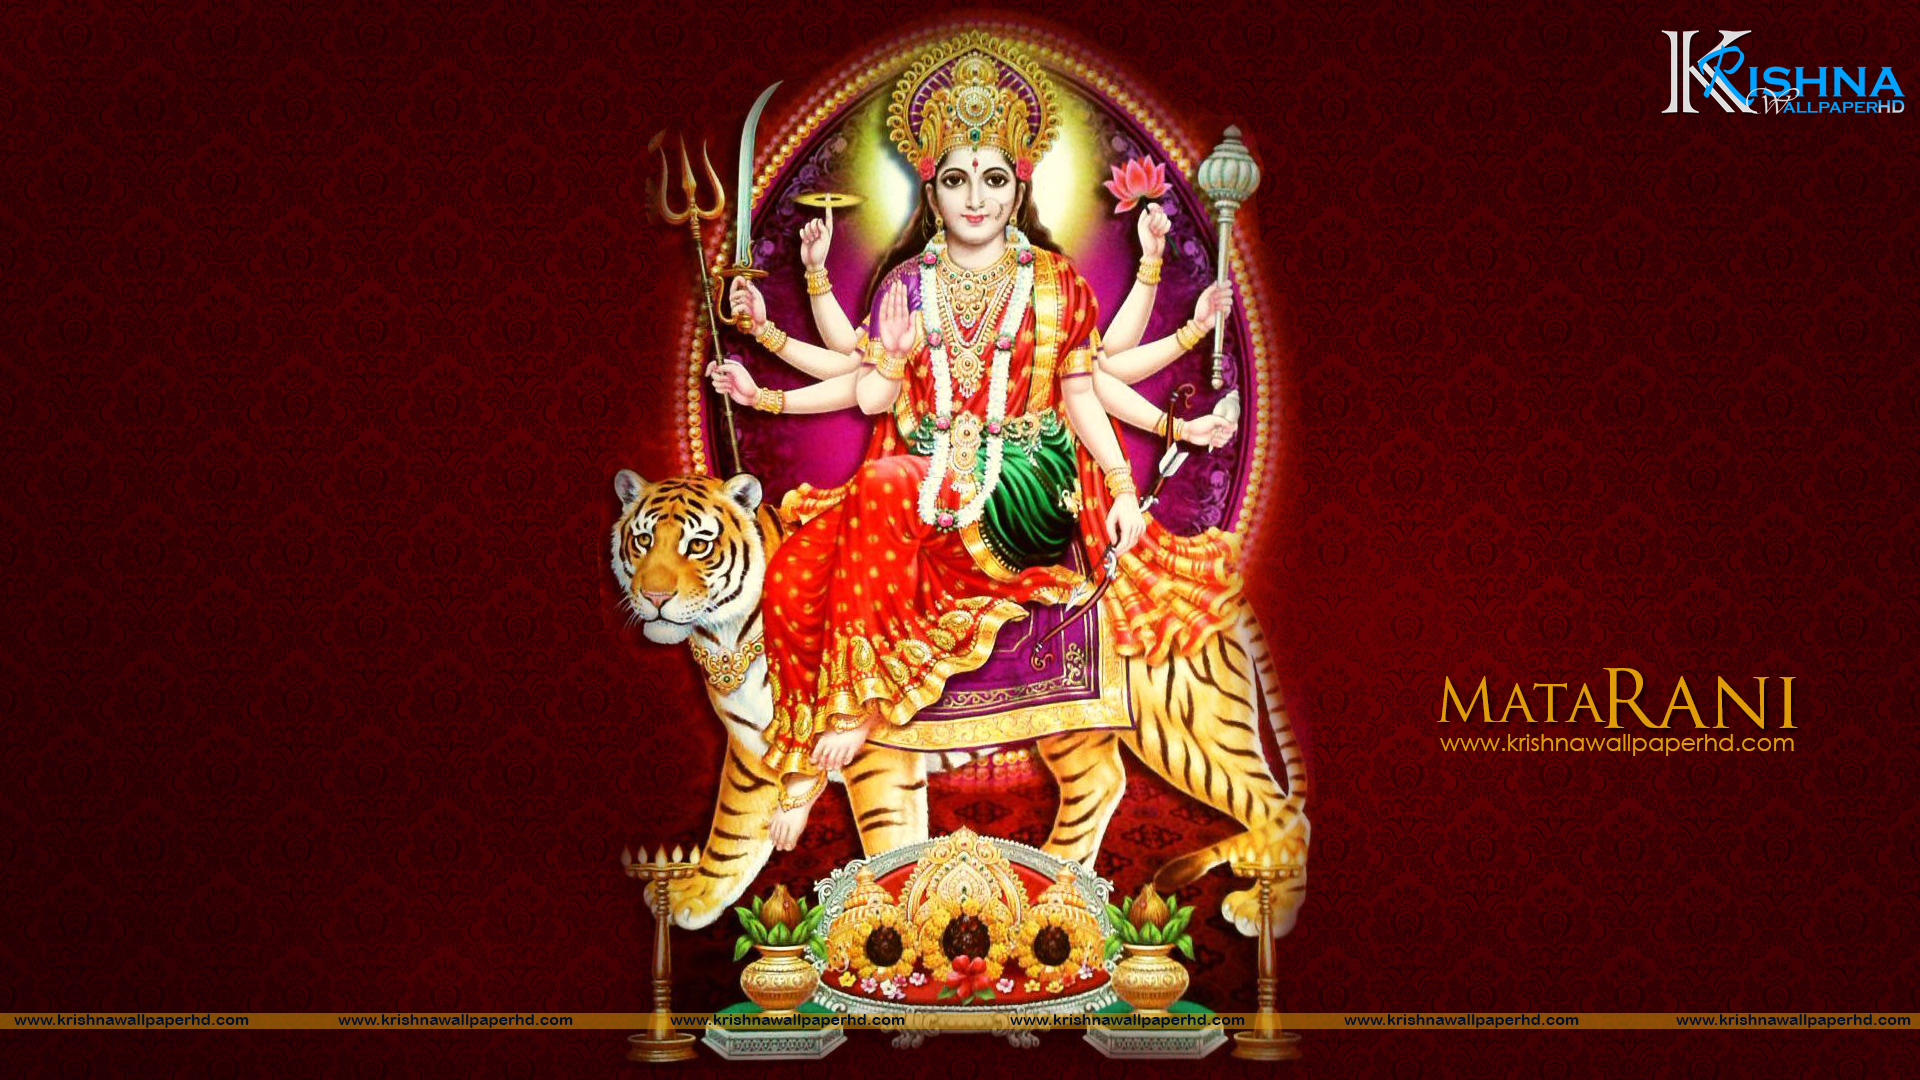 Mata Rani Wallpaper full size HD